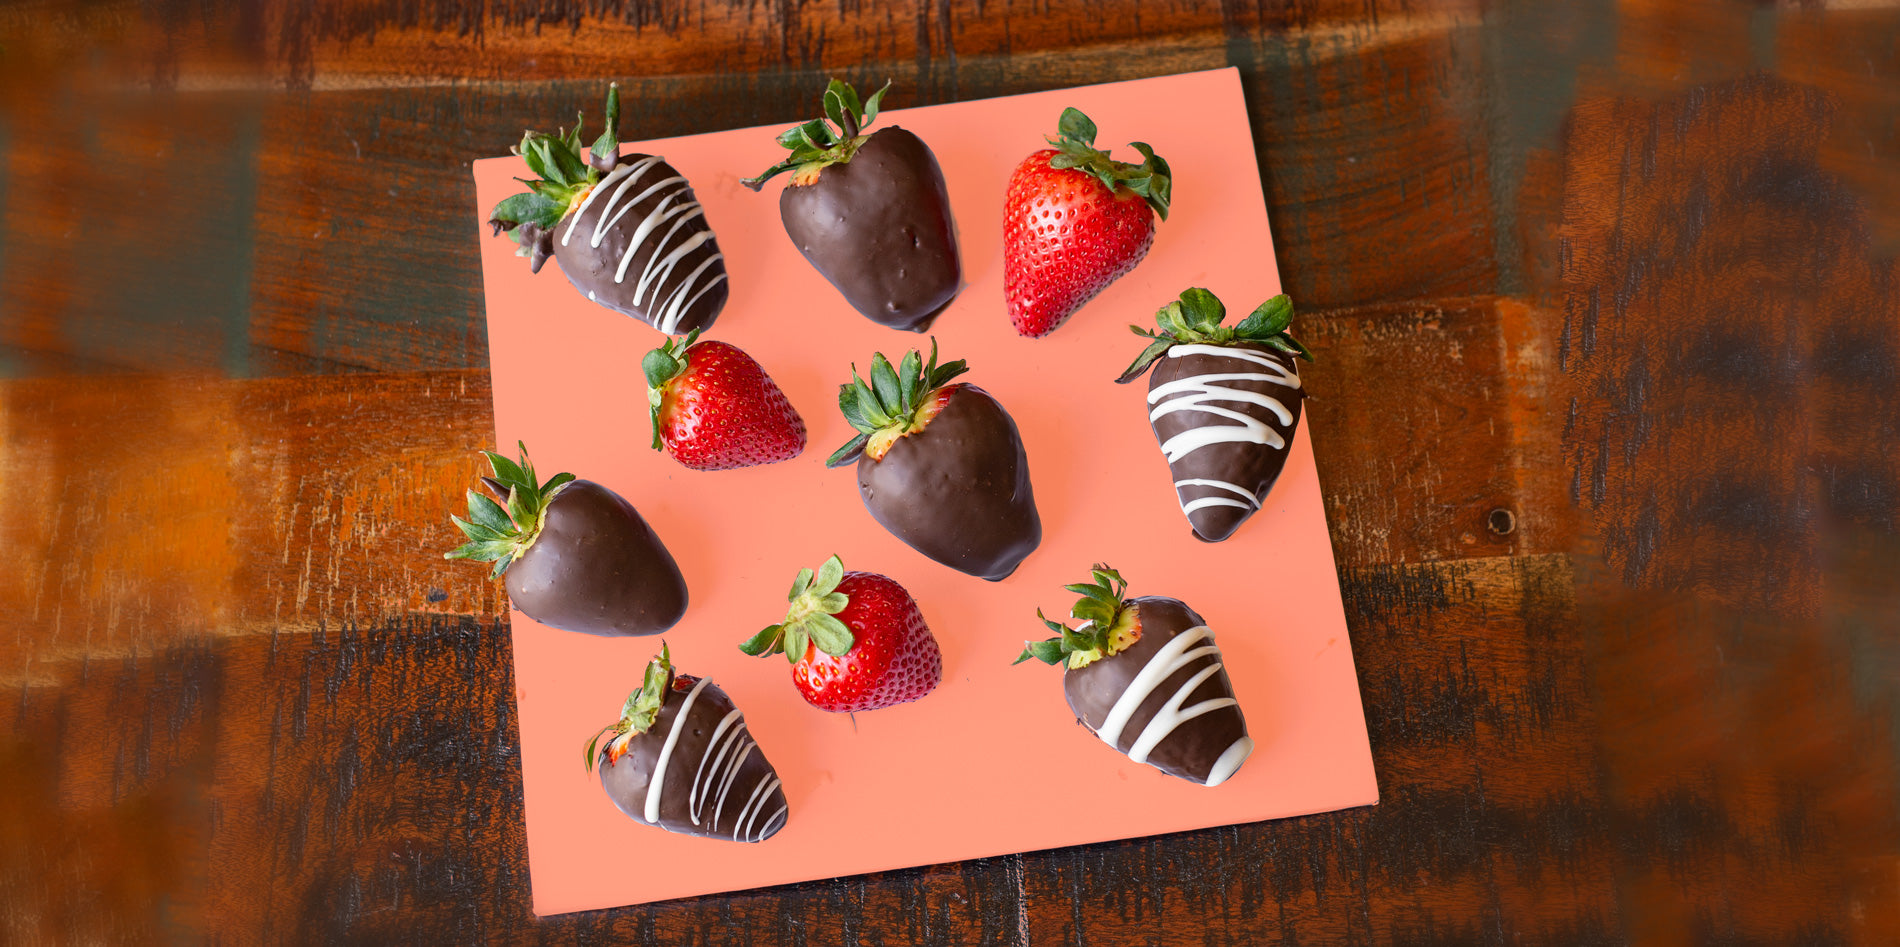 chocolate strawberries on orange board